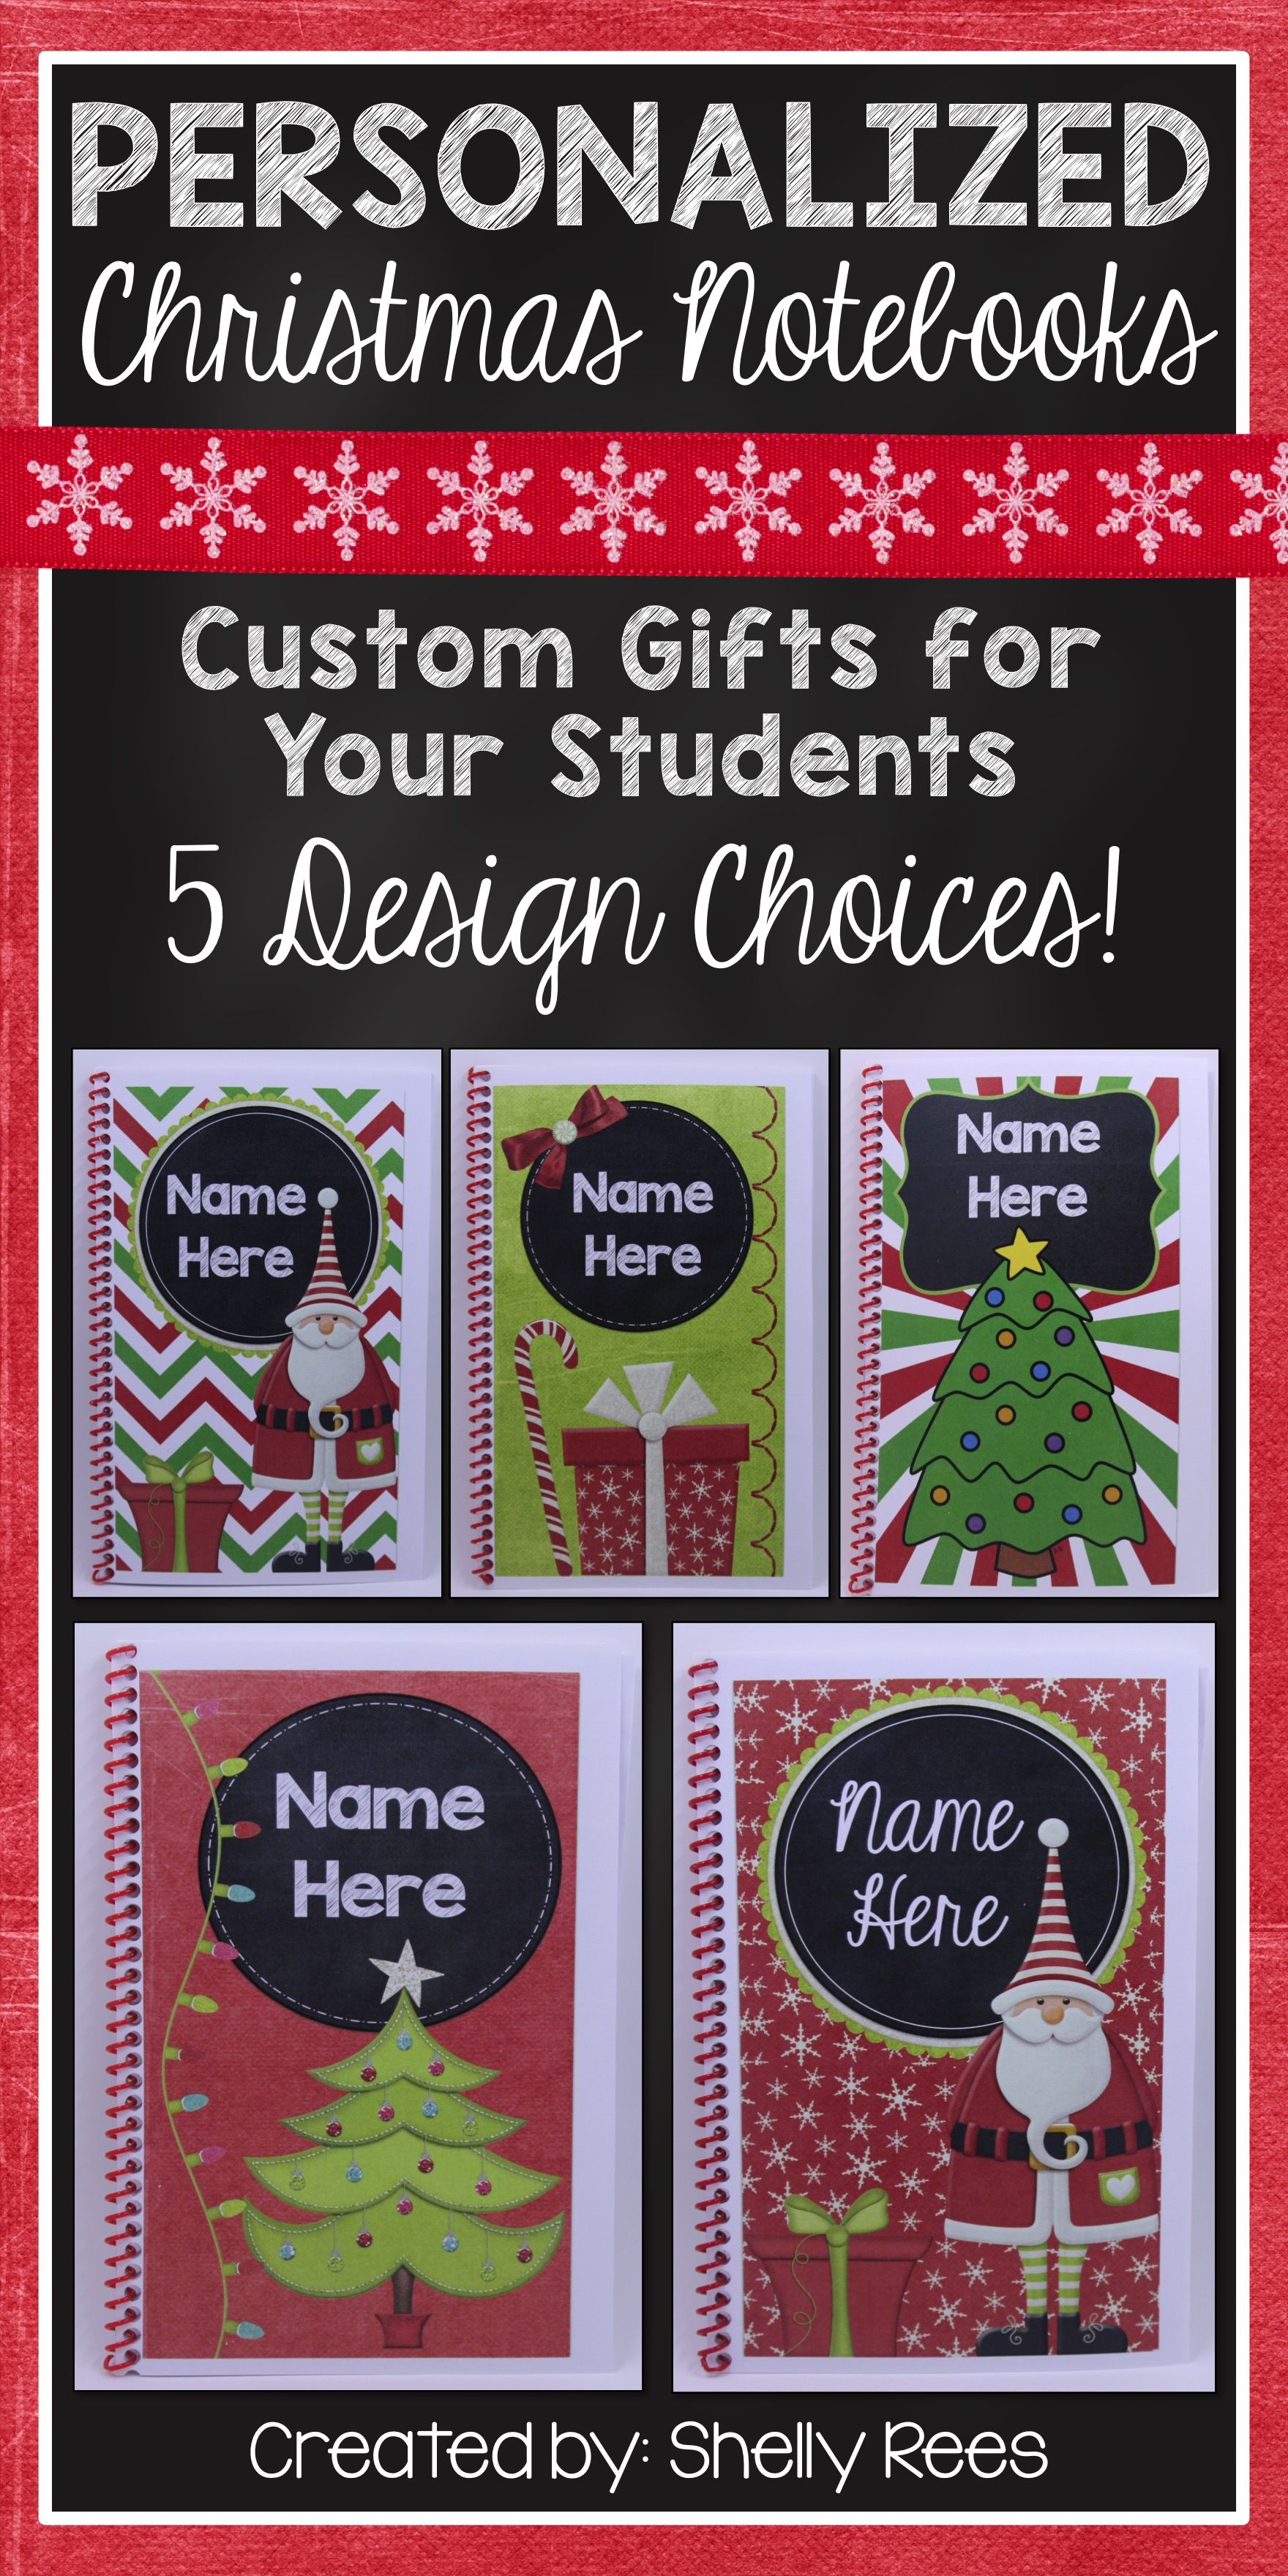 Custom Christmas Gifts.Inexpensive Christmas Gifts For Students From Teachers